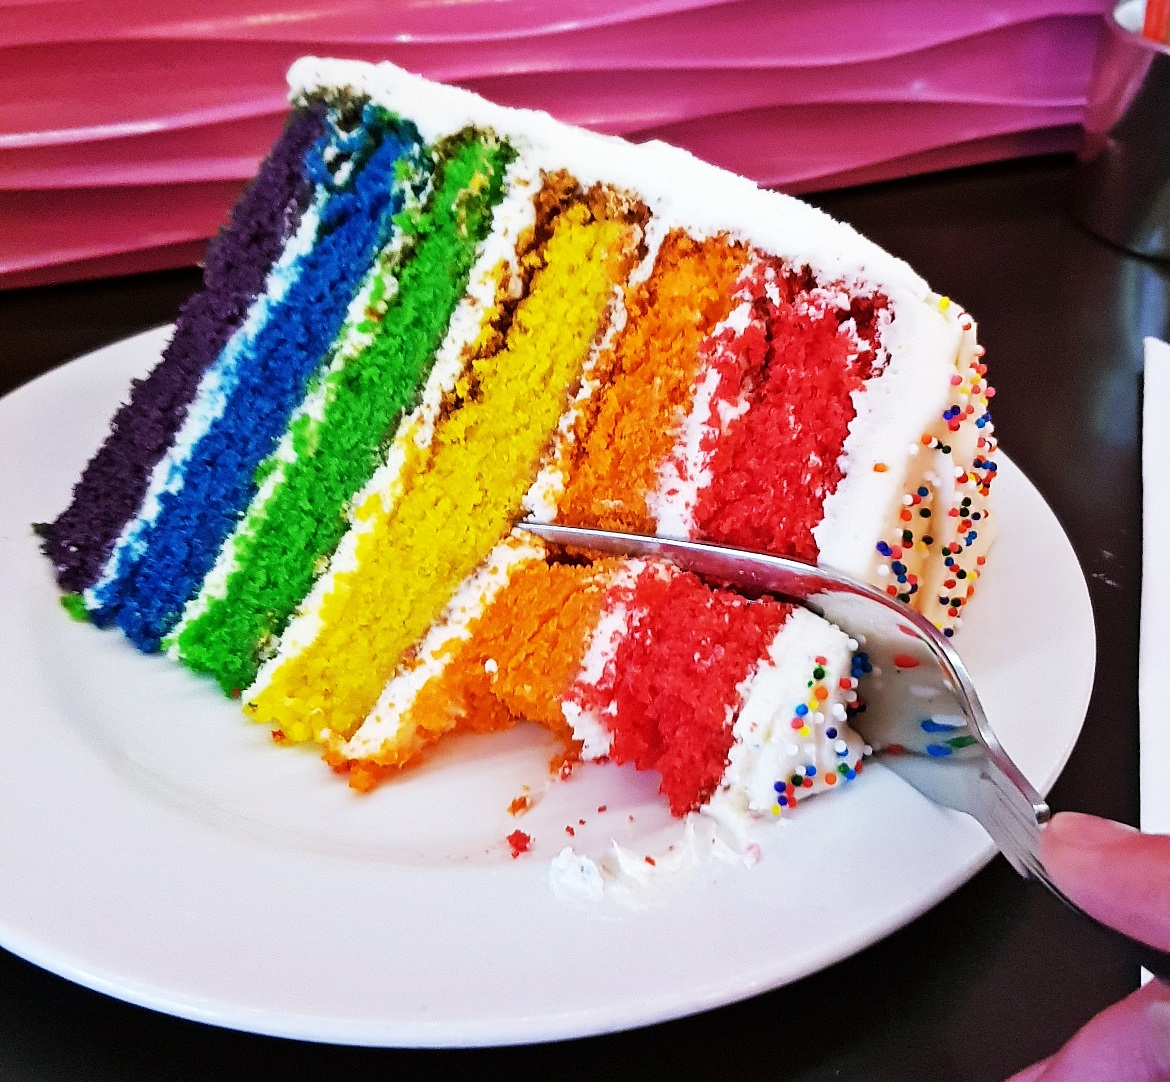 Rainbow cake at Hummingbird Bakery - October Monthly Recap by BeckyBecky Blogs